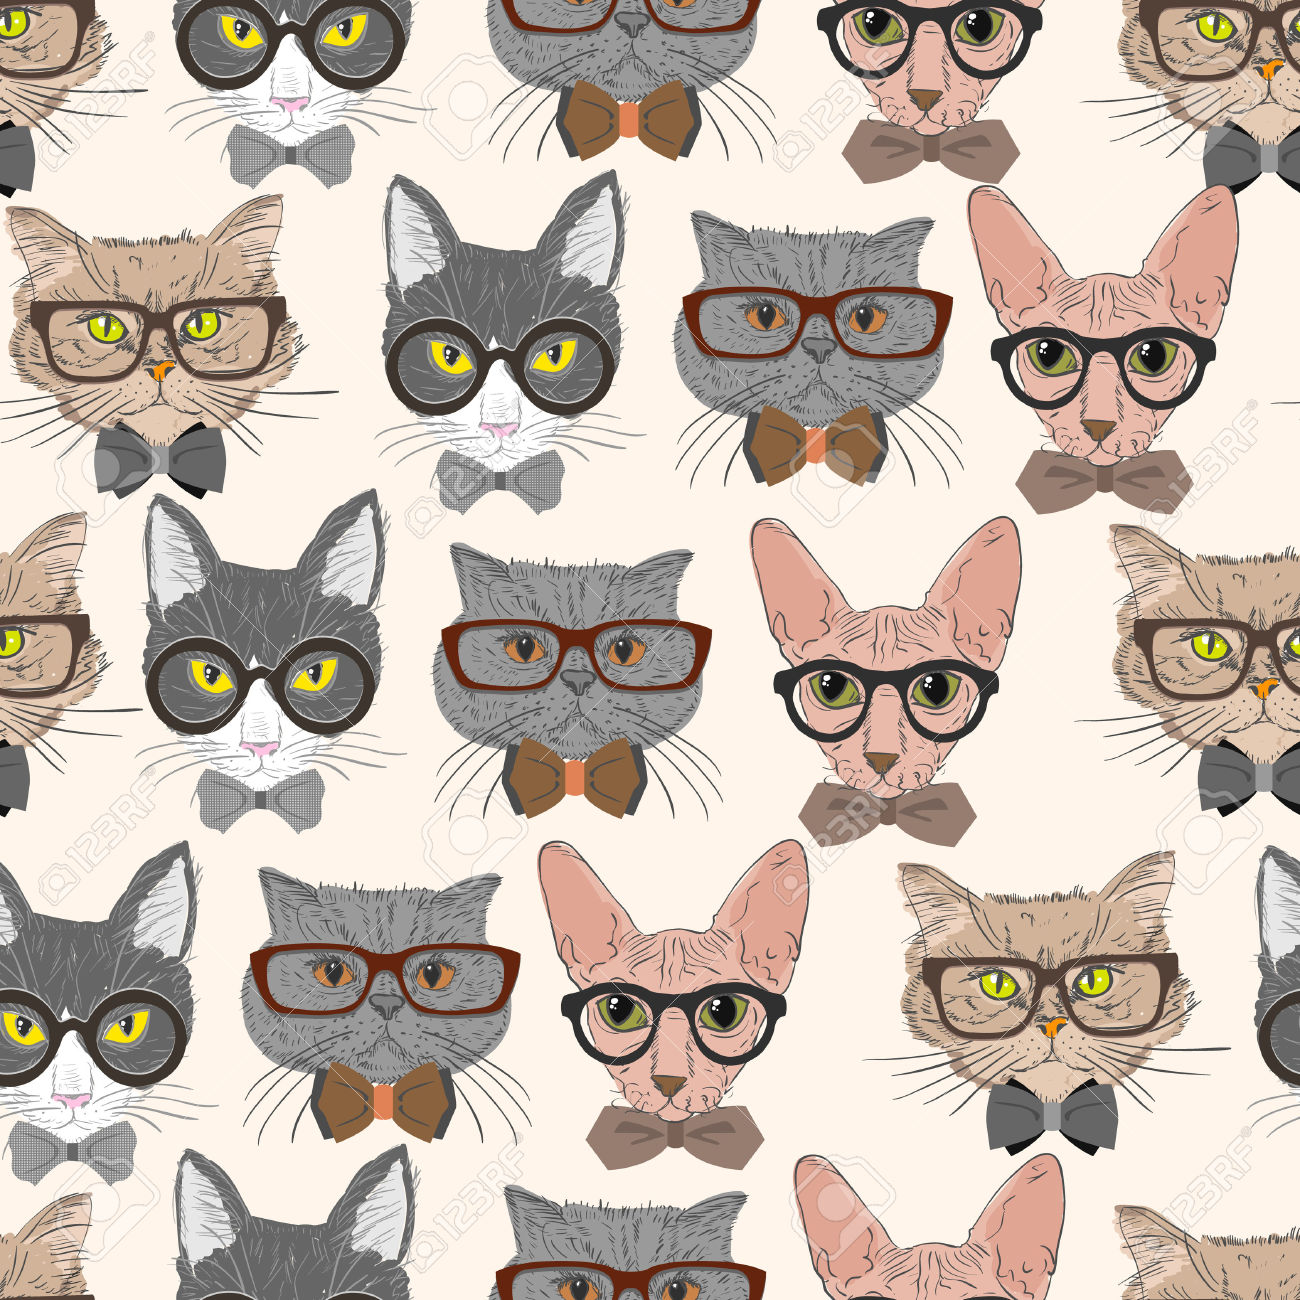 Hipster cat clipart tumblr.